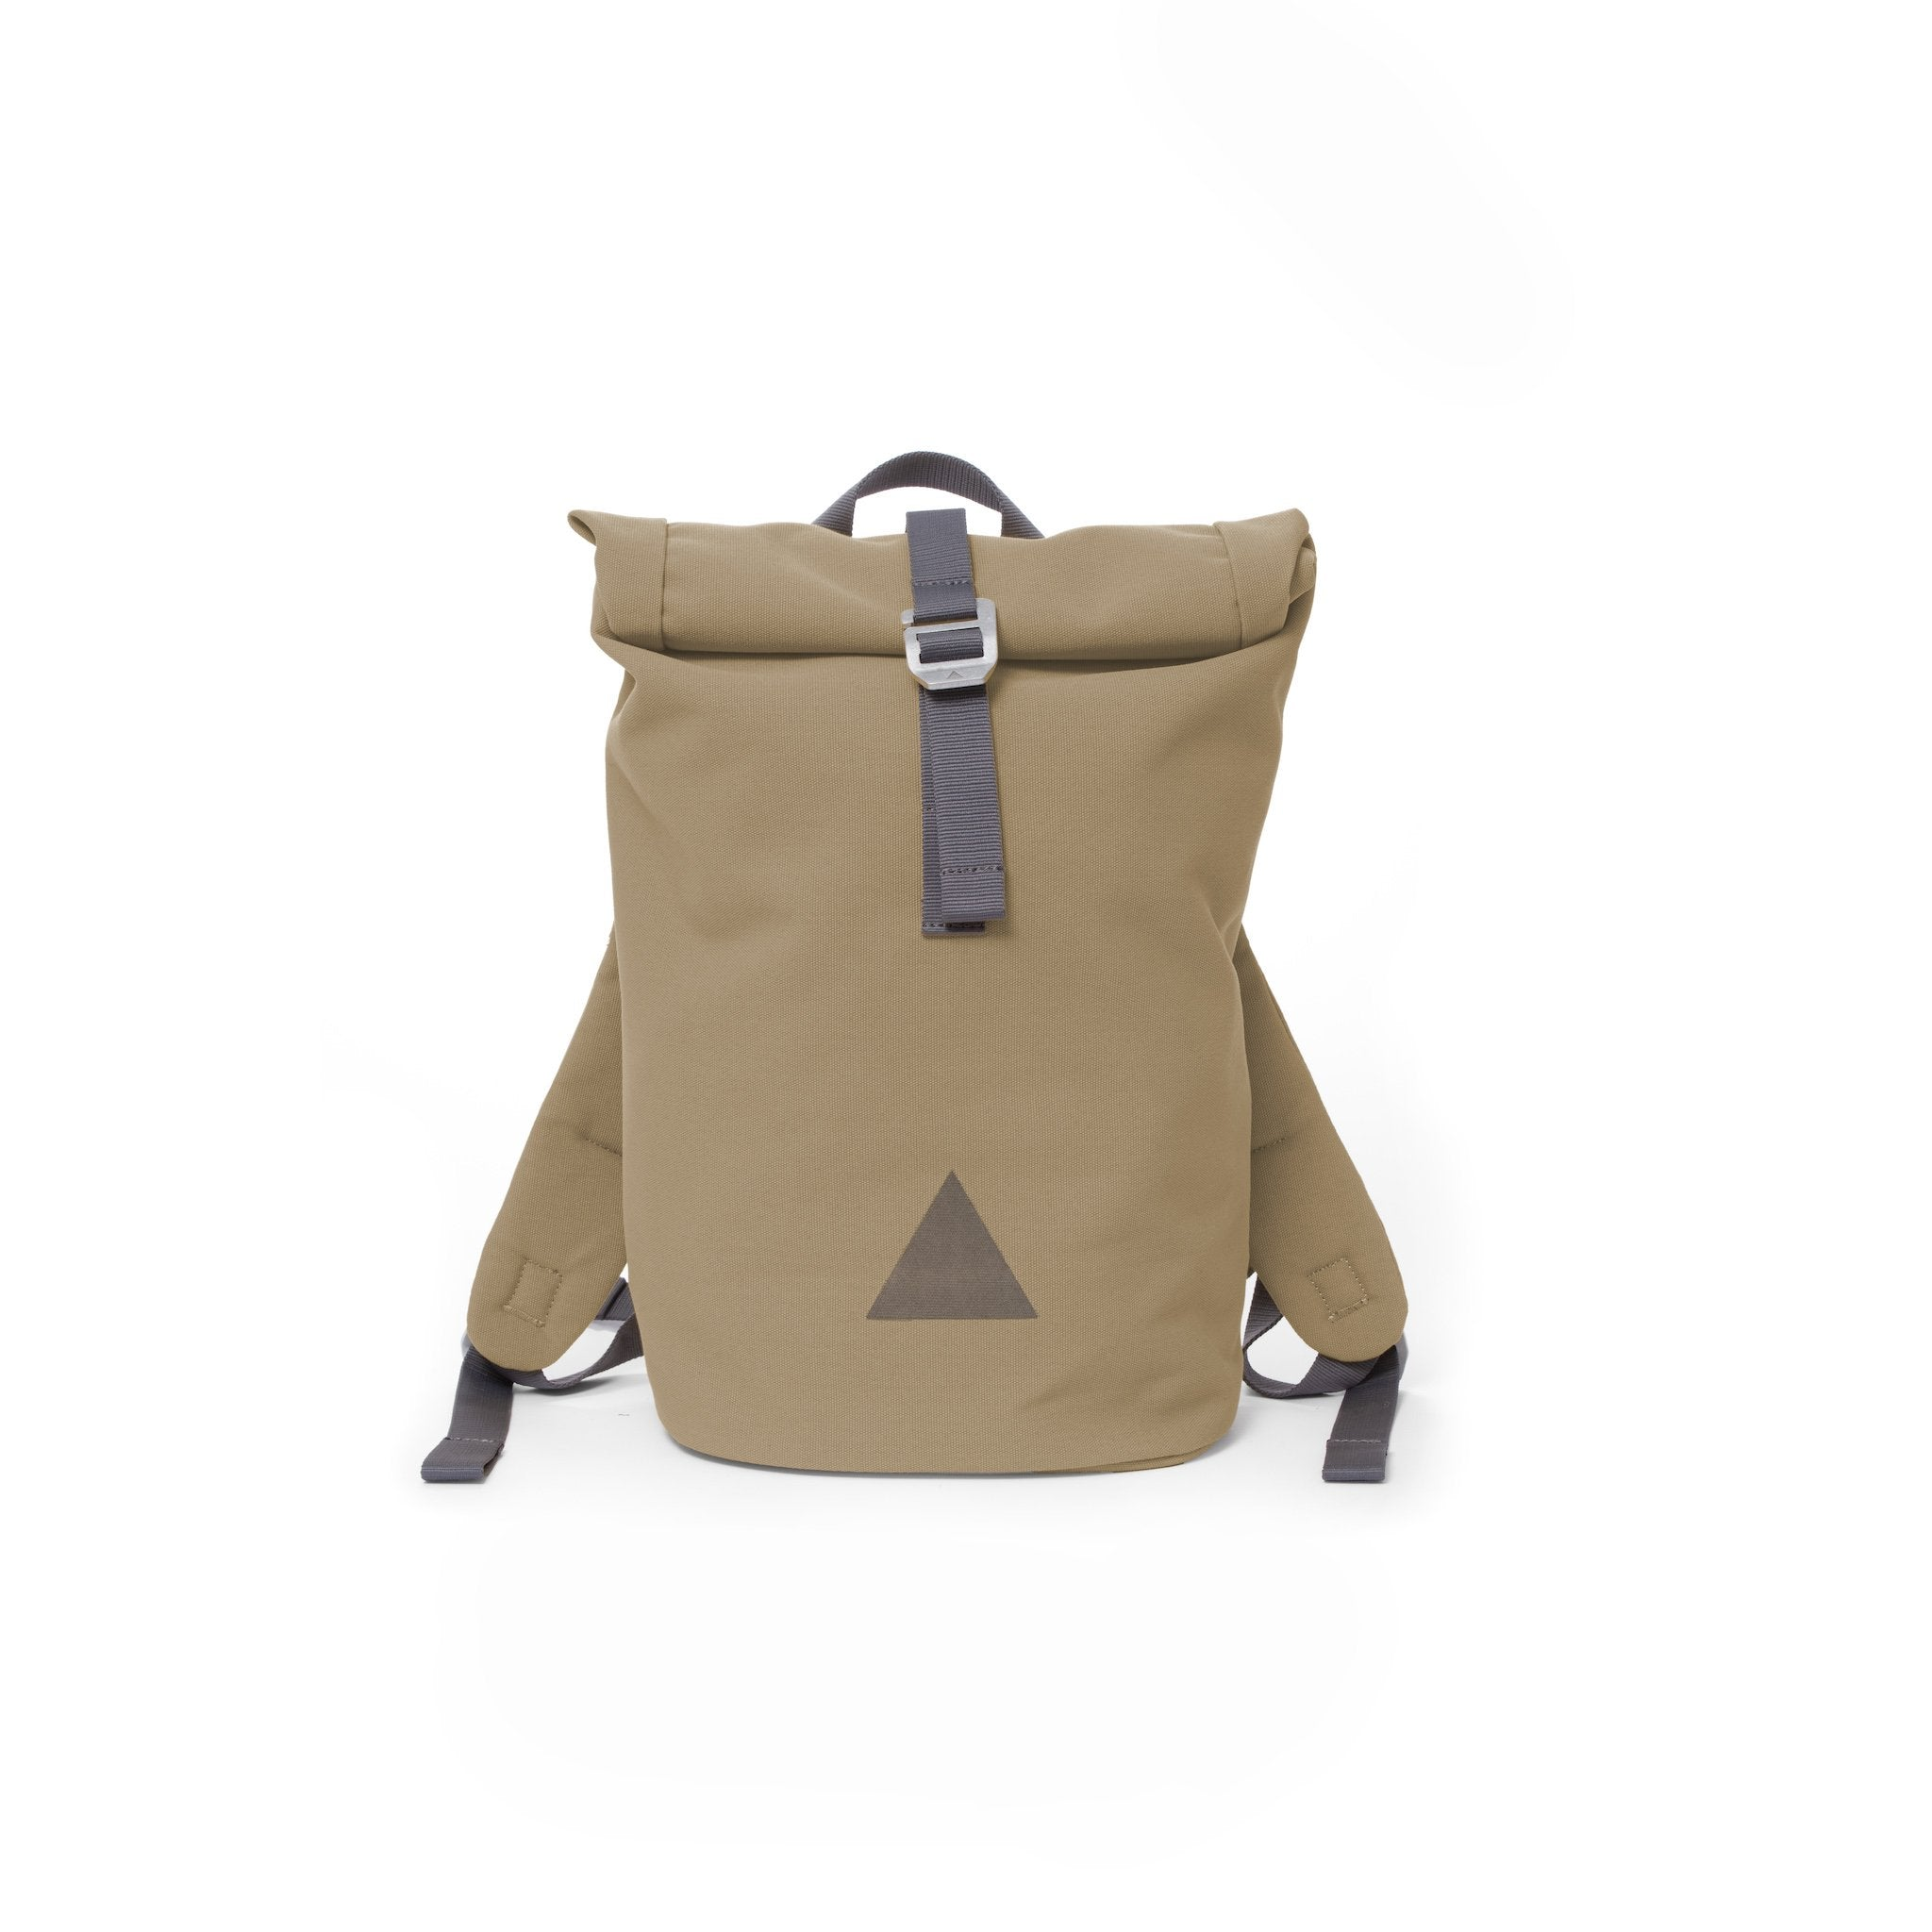 Khaki recycled canvas women's rolltop backpack with triangle logo.